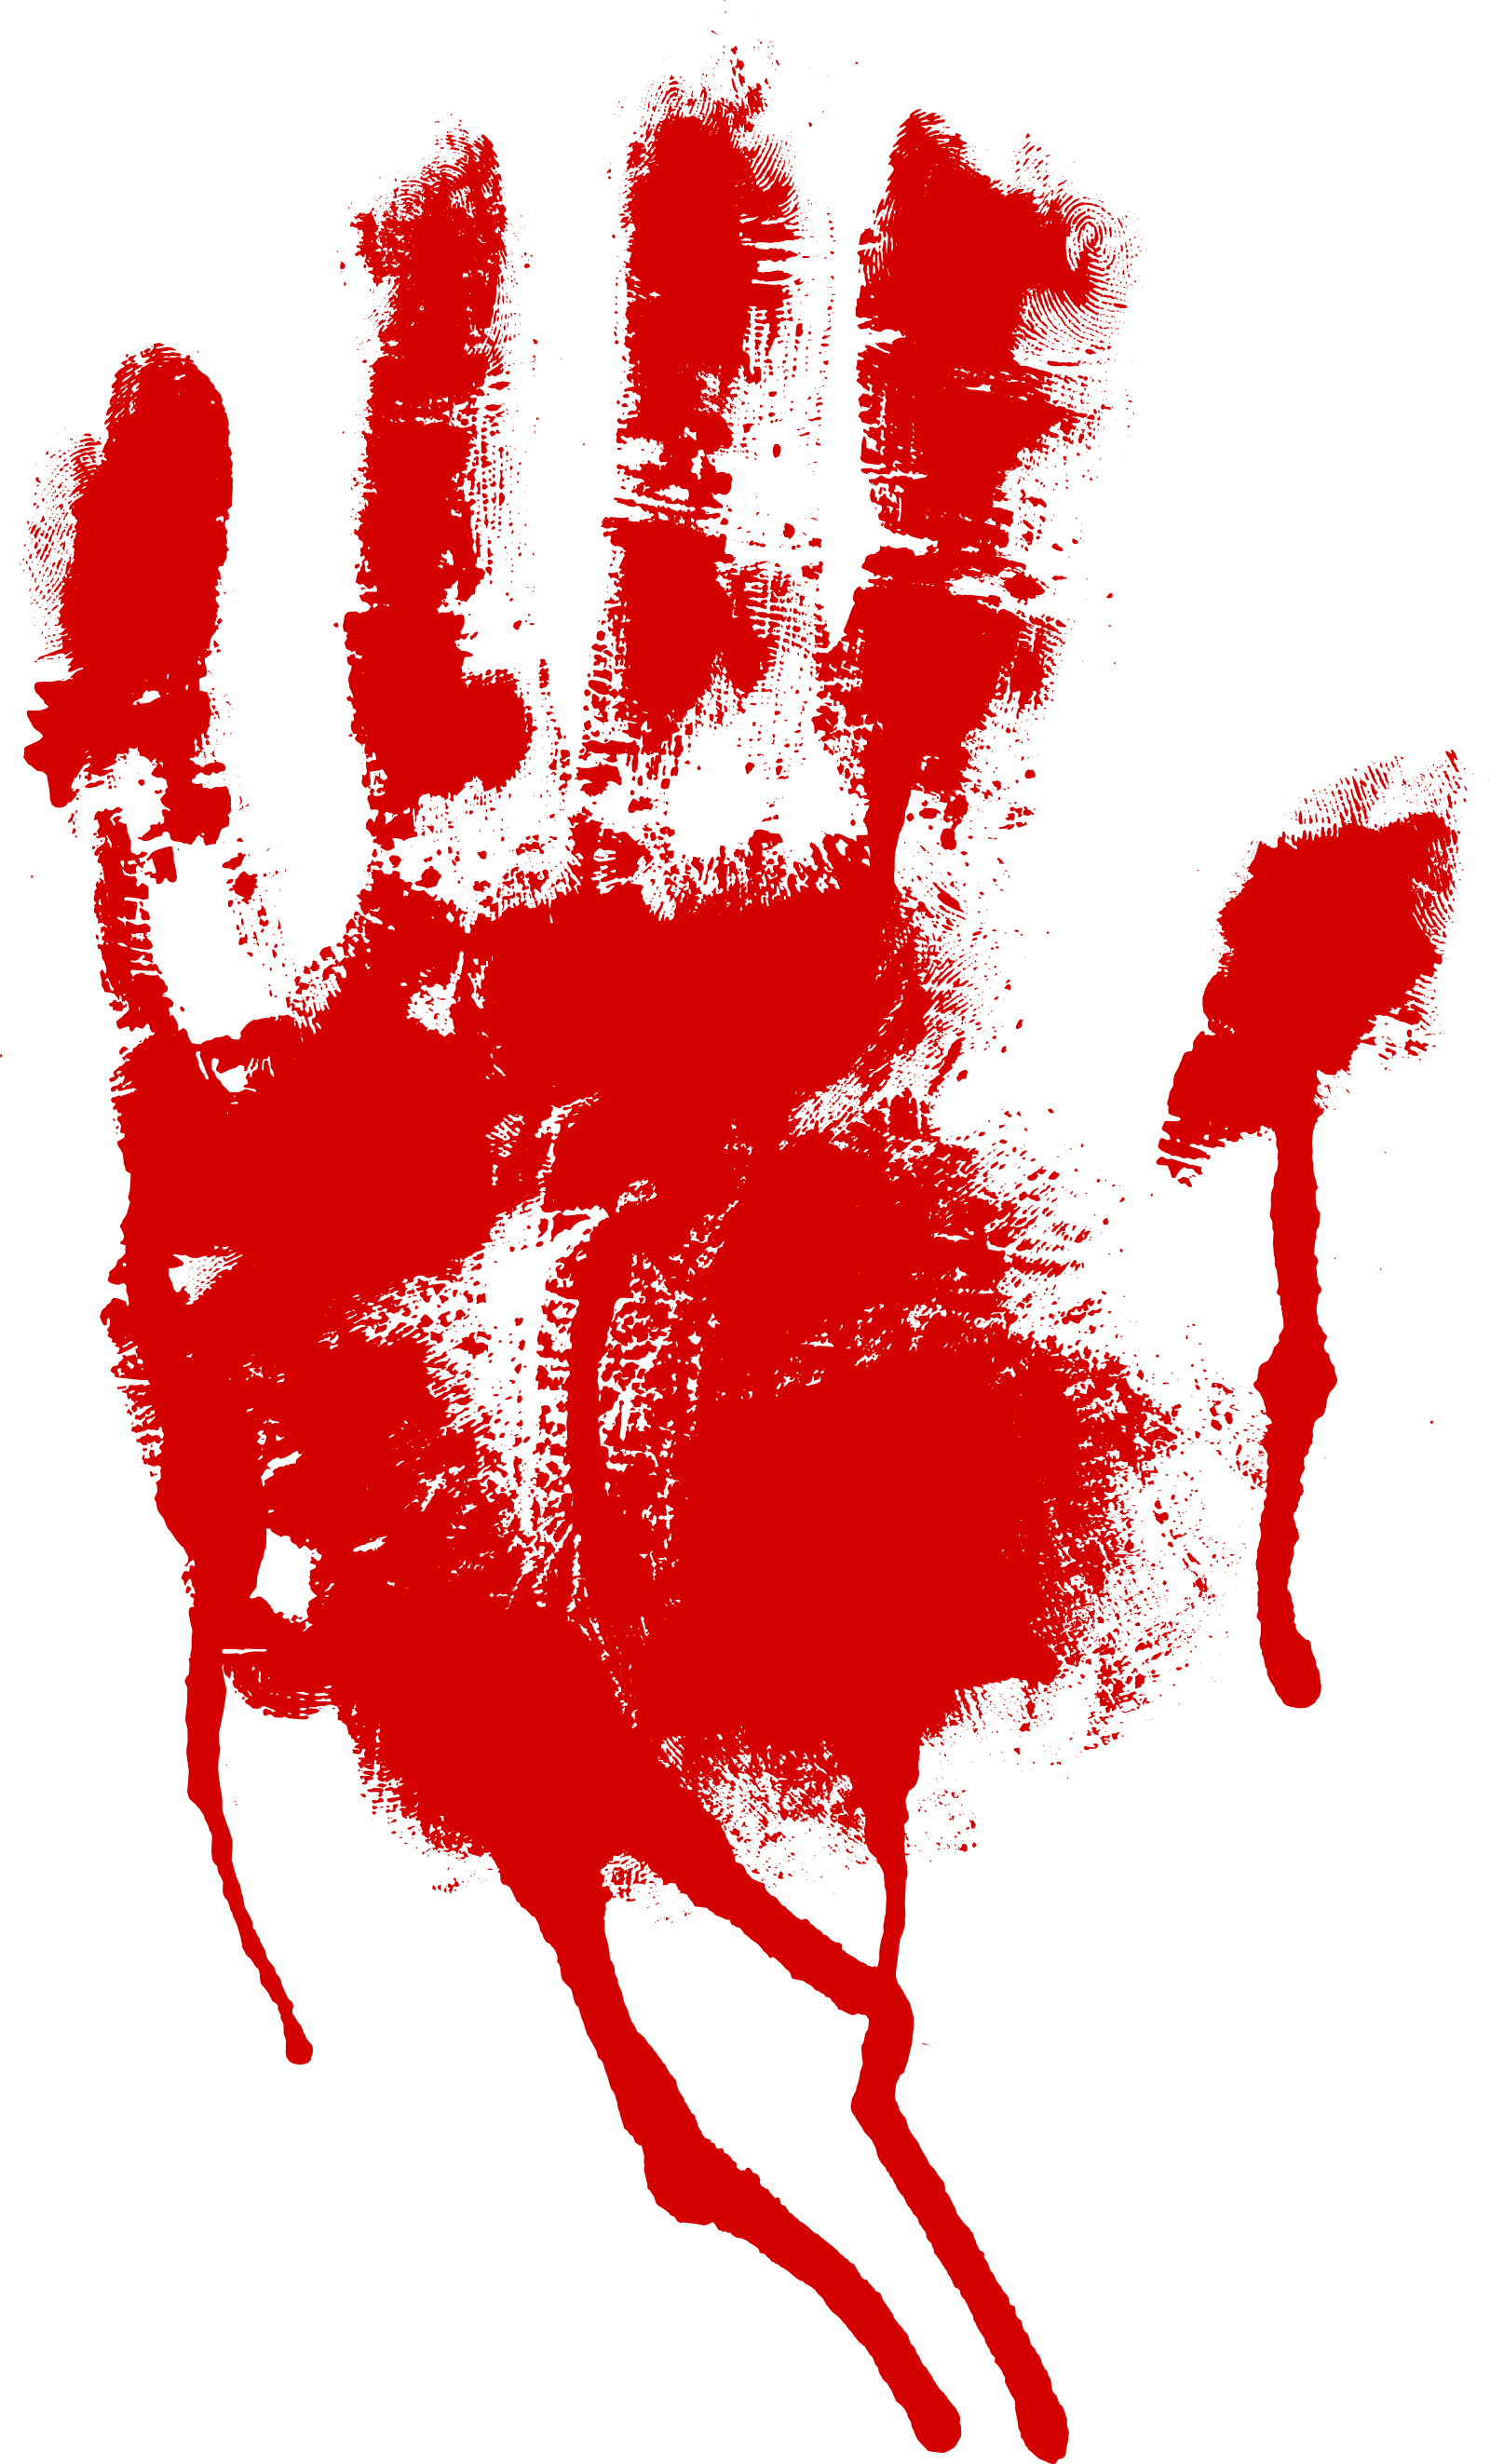 Bloody Handprint Png